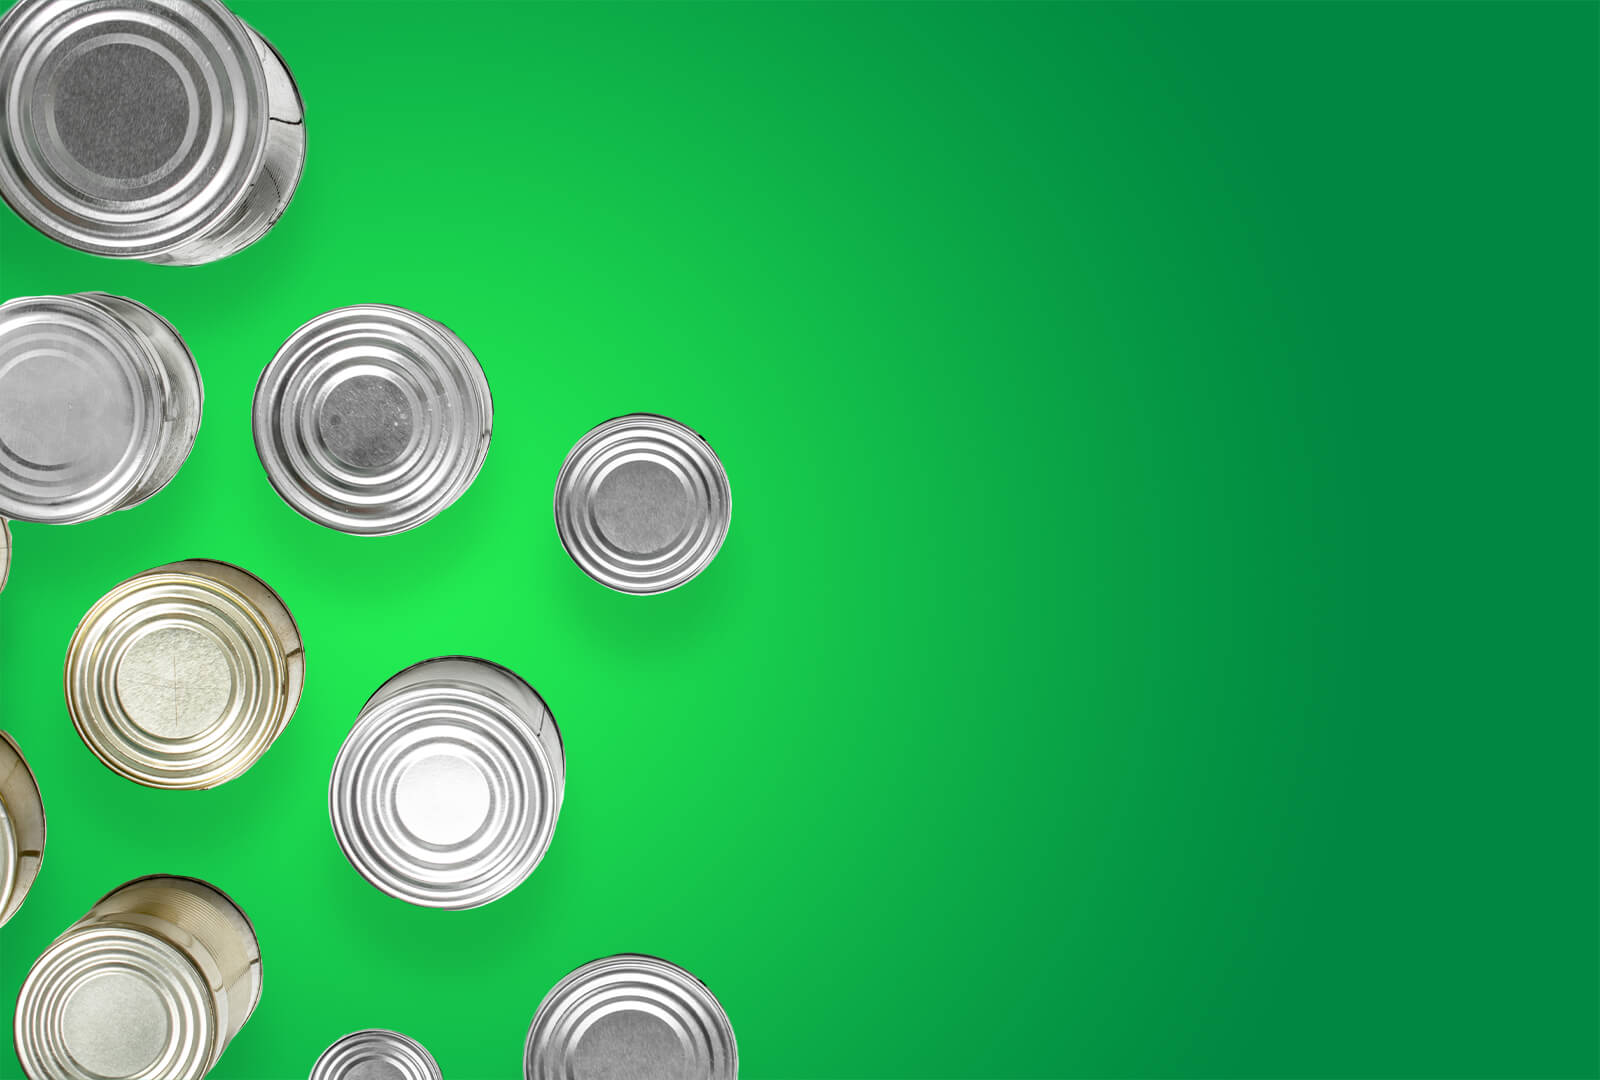 Top view of canned goods